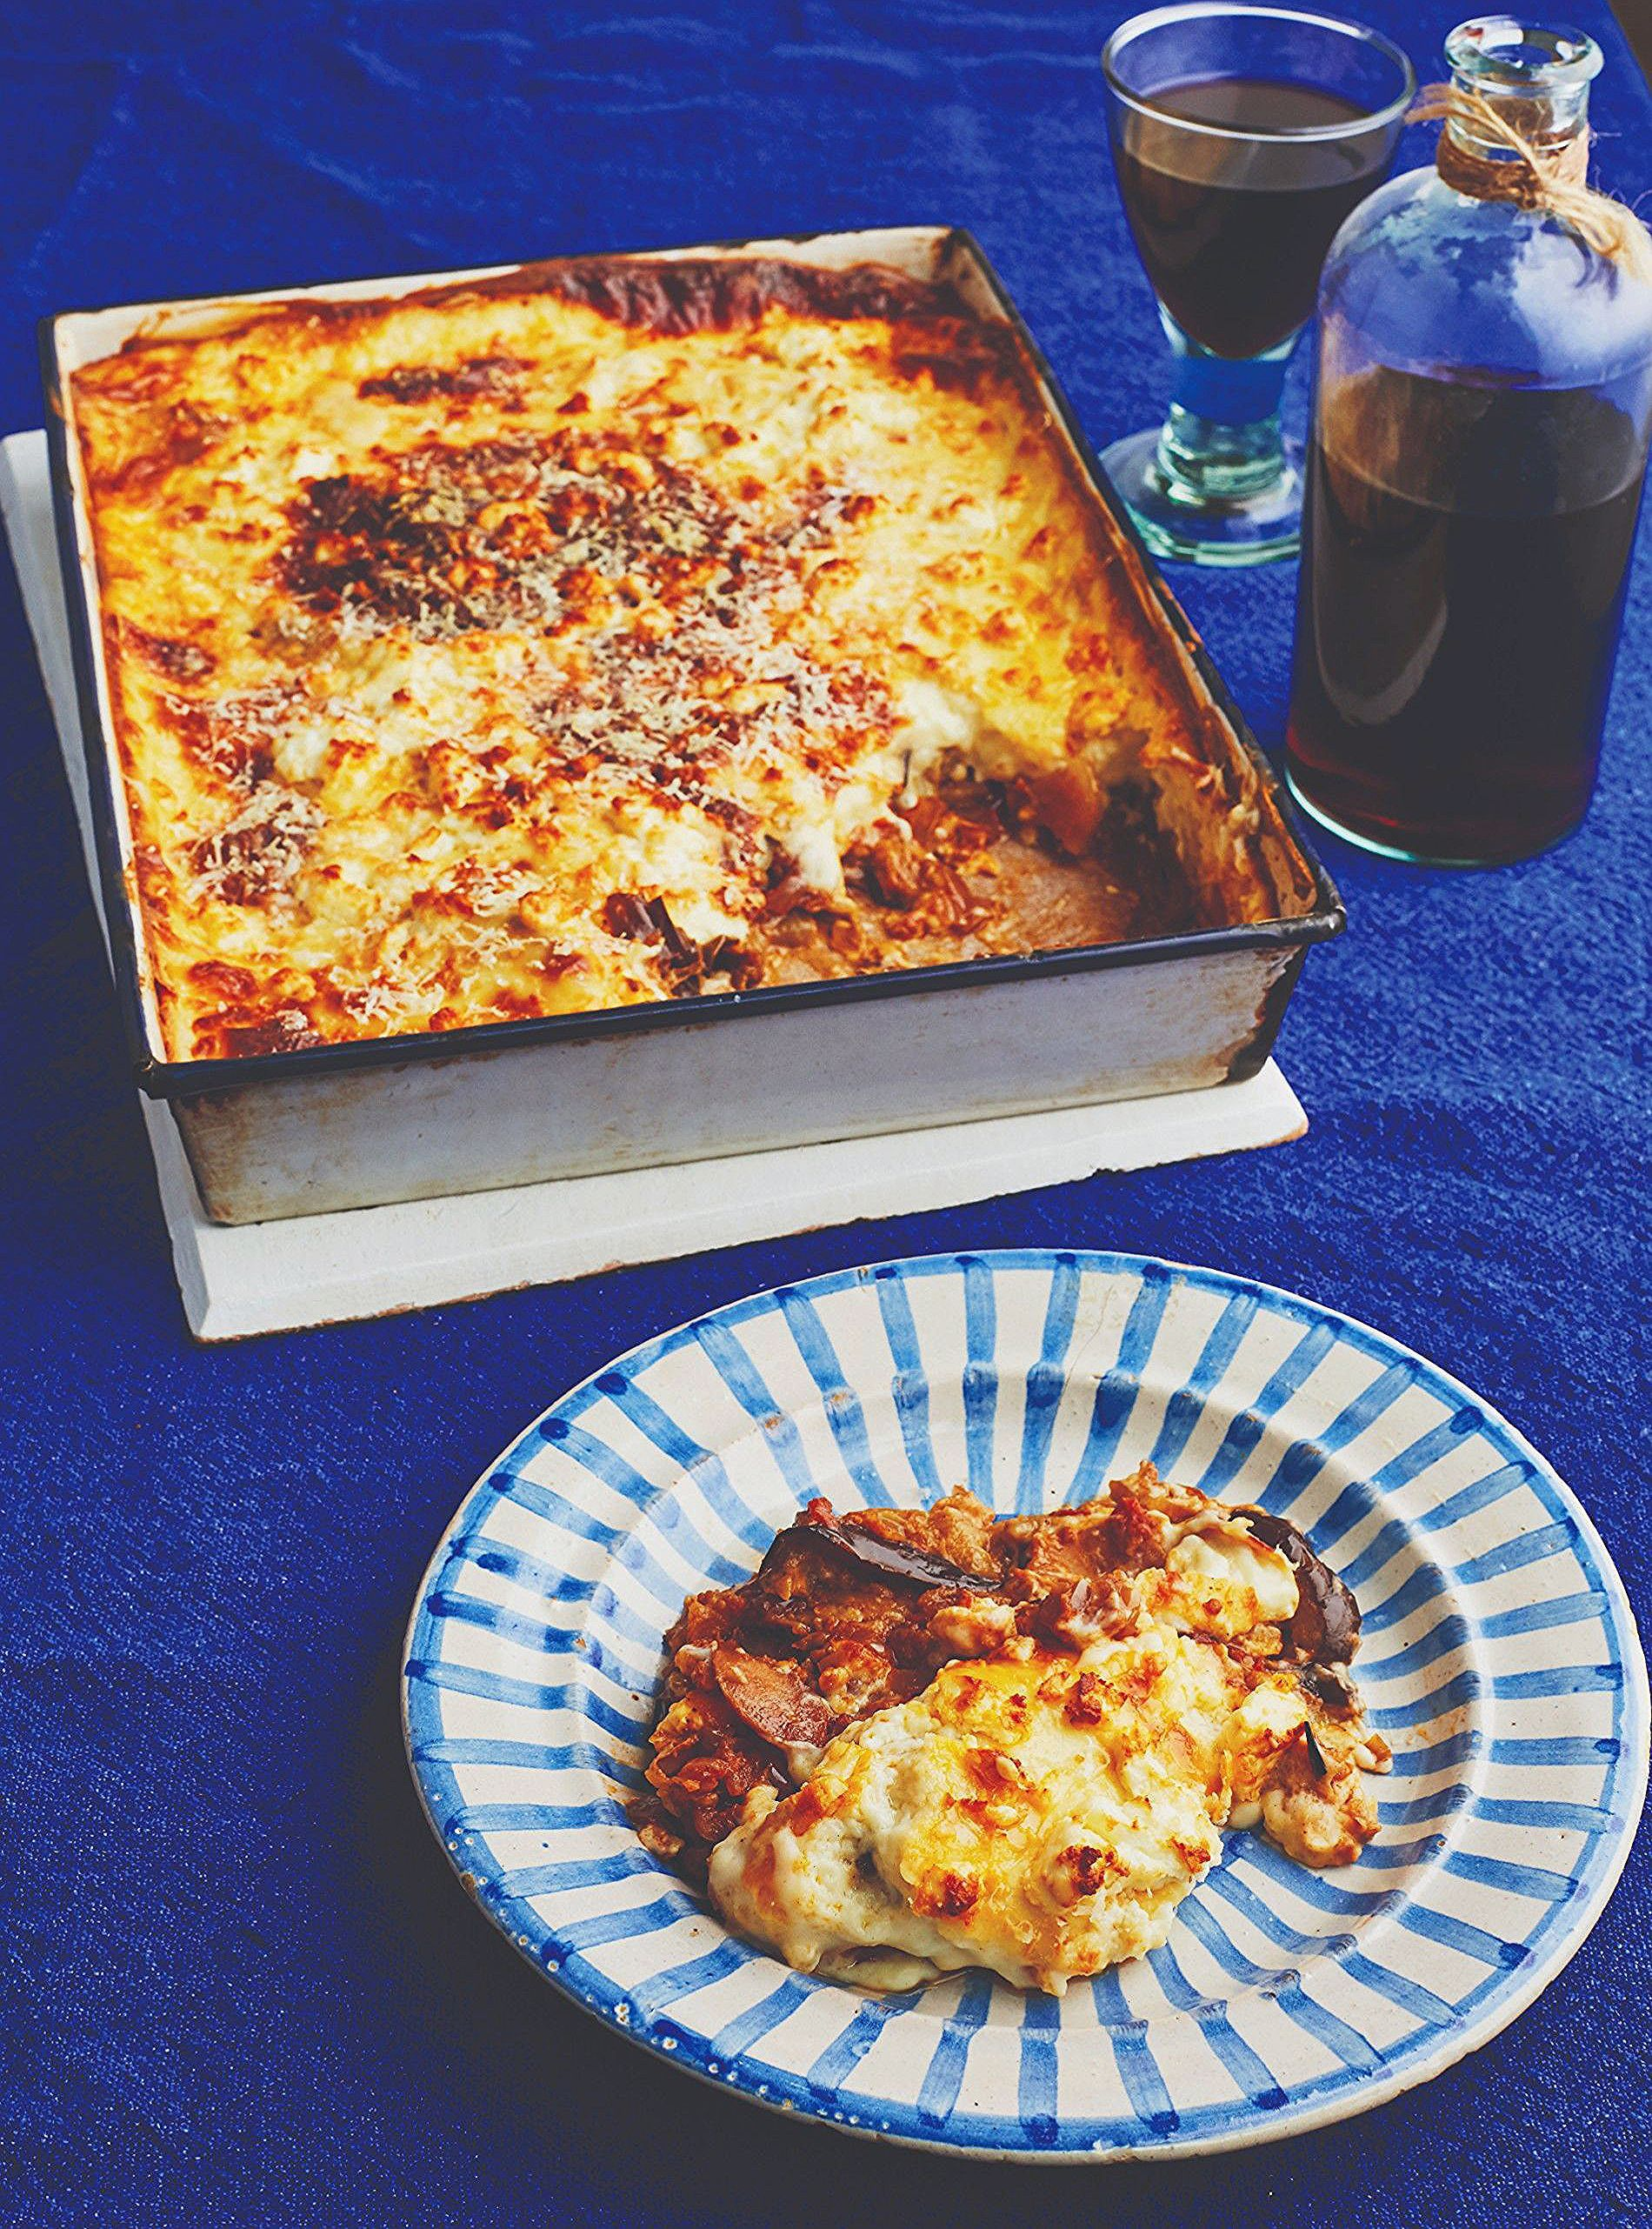 Aubergine And Potato Vegetarian Moussaka Liz Earle Wellbeing Moussaka Recipe Vegetarian Moussaka Recipe Vegan Moussaka